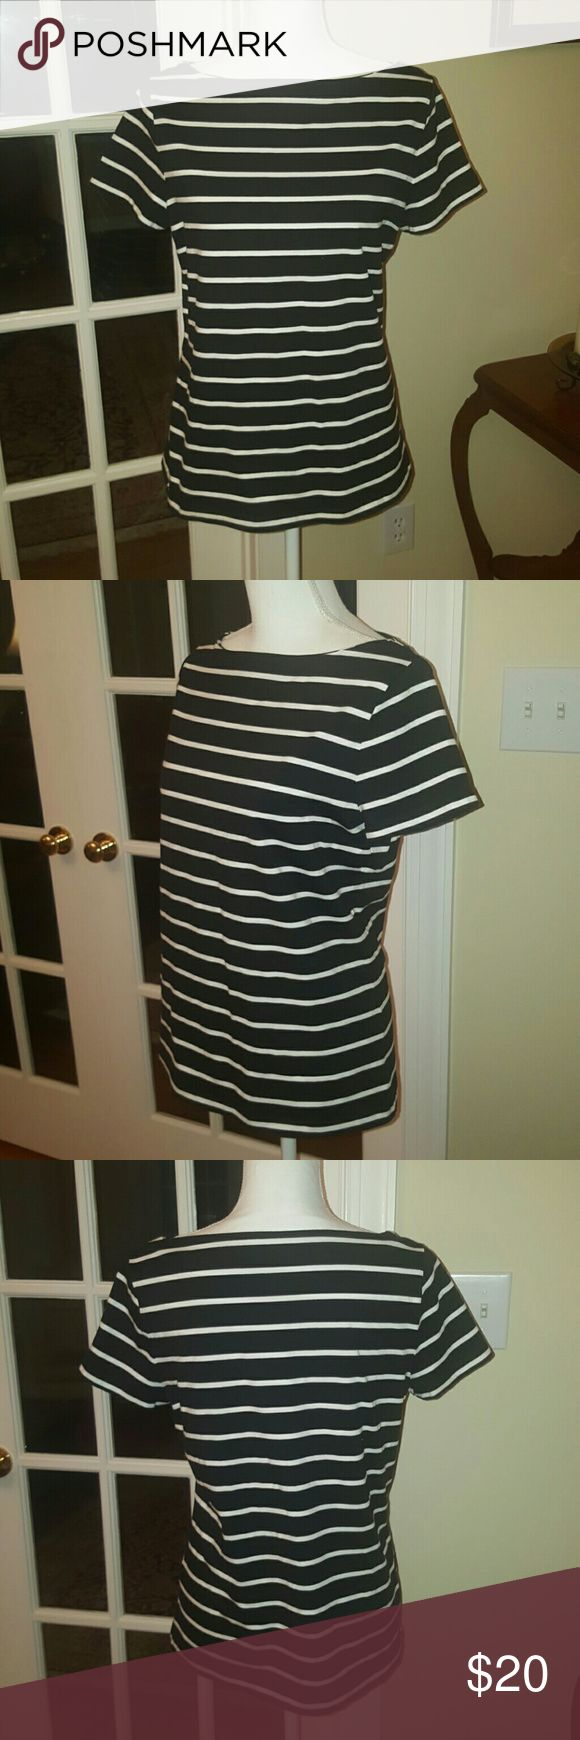 Talbots black and white stripe cotton tees size M Talbots black and white striped cotton tee size medium. Excellent condition. Talbots Tops Tees - Short Sleeve